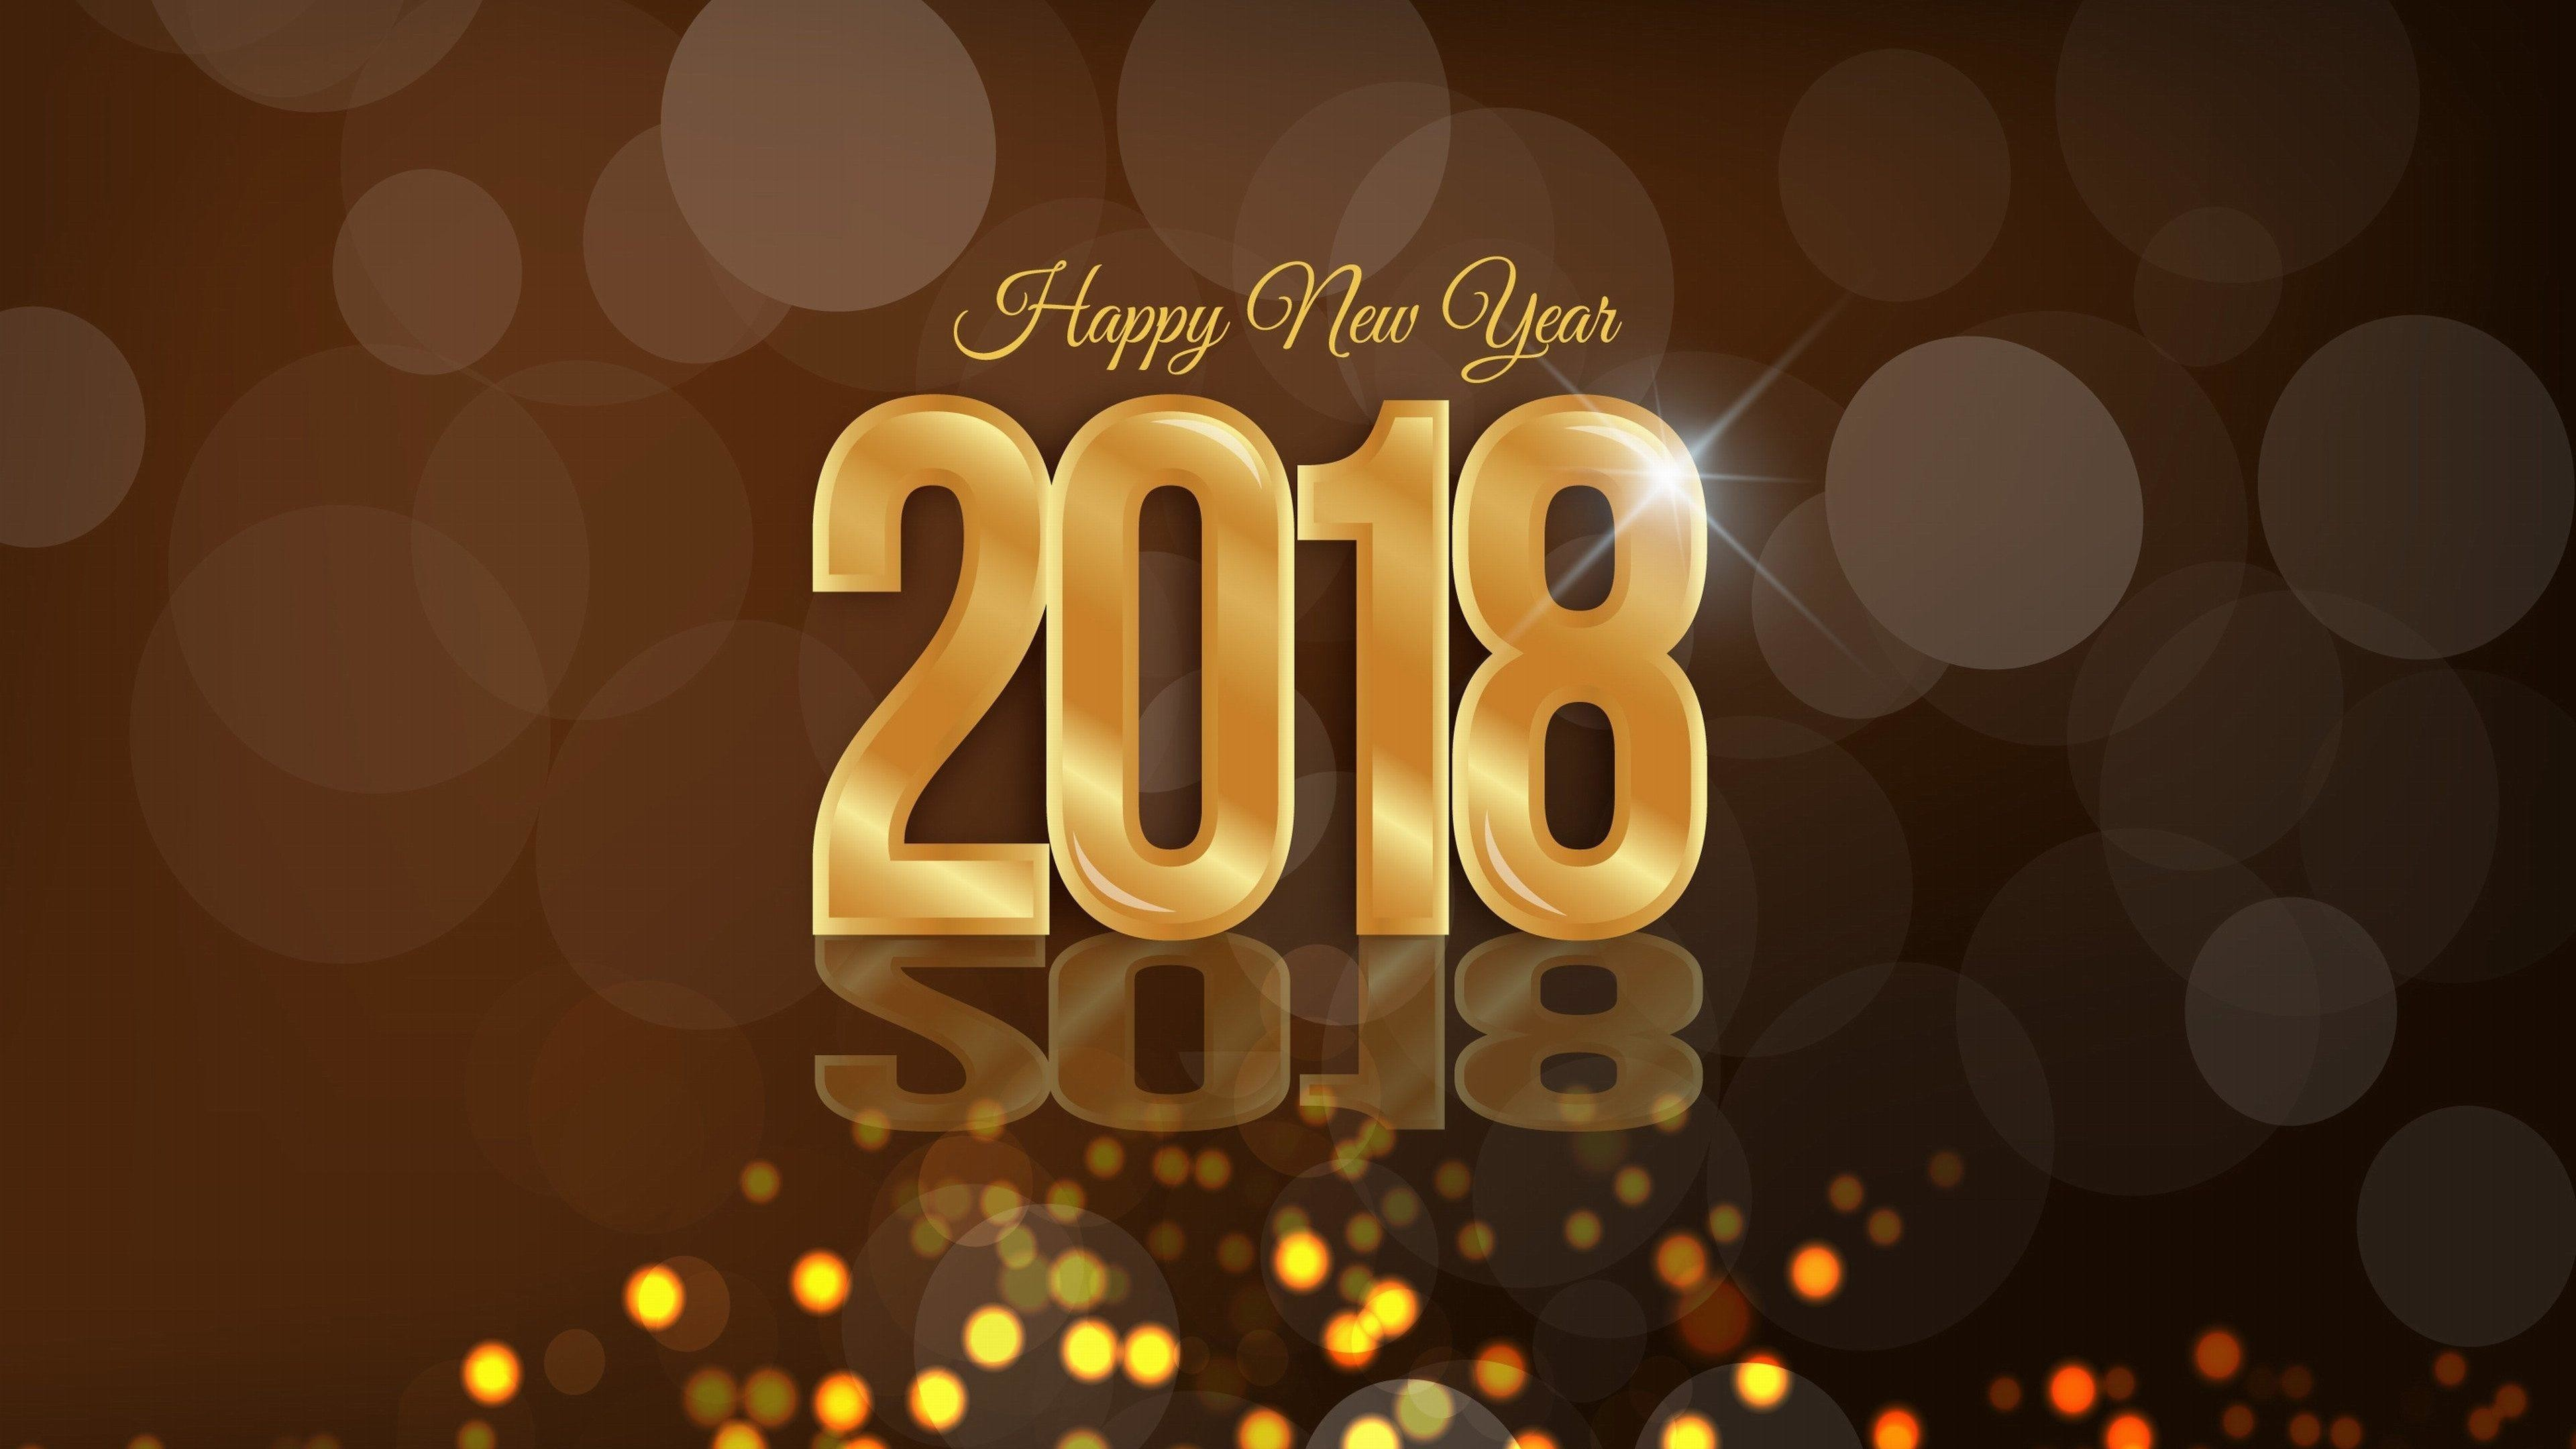 new happy new year 2018 wallpaper 78 images happy new year 2018 hd wallpaper shayari happy new year 2018 hd wallpaper download